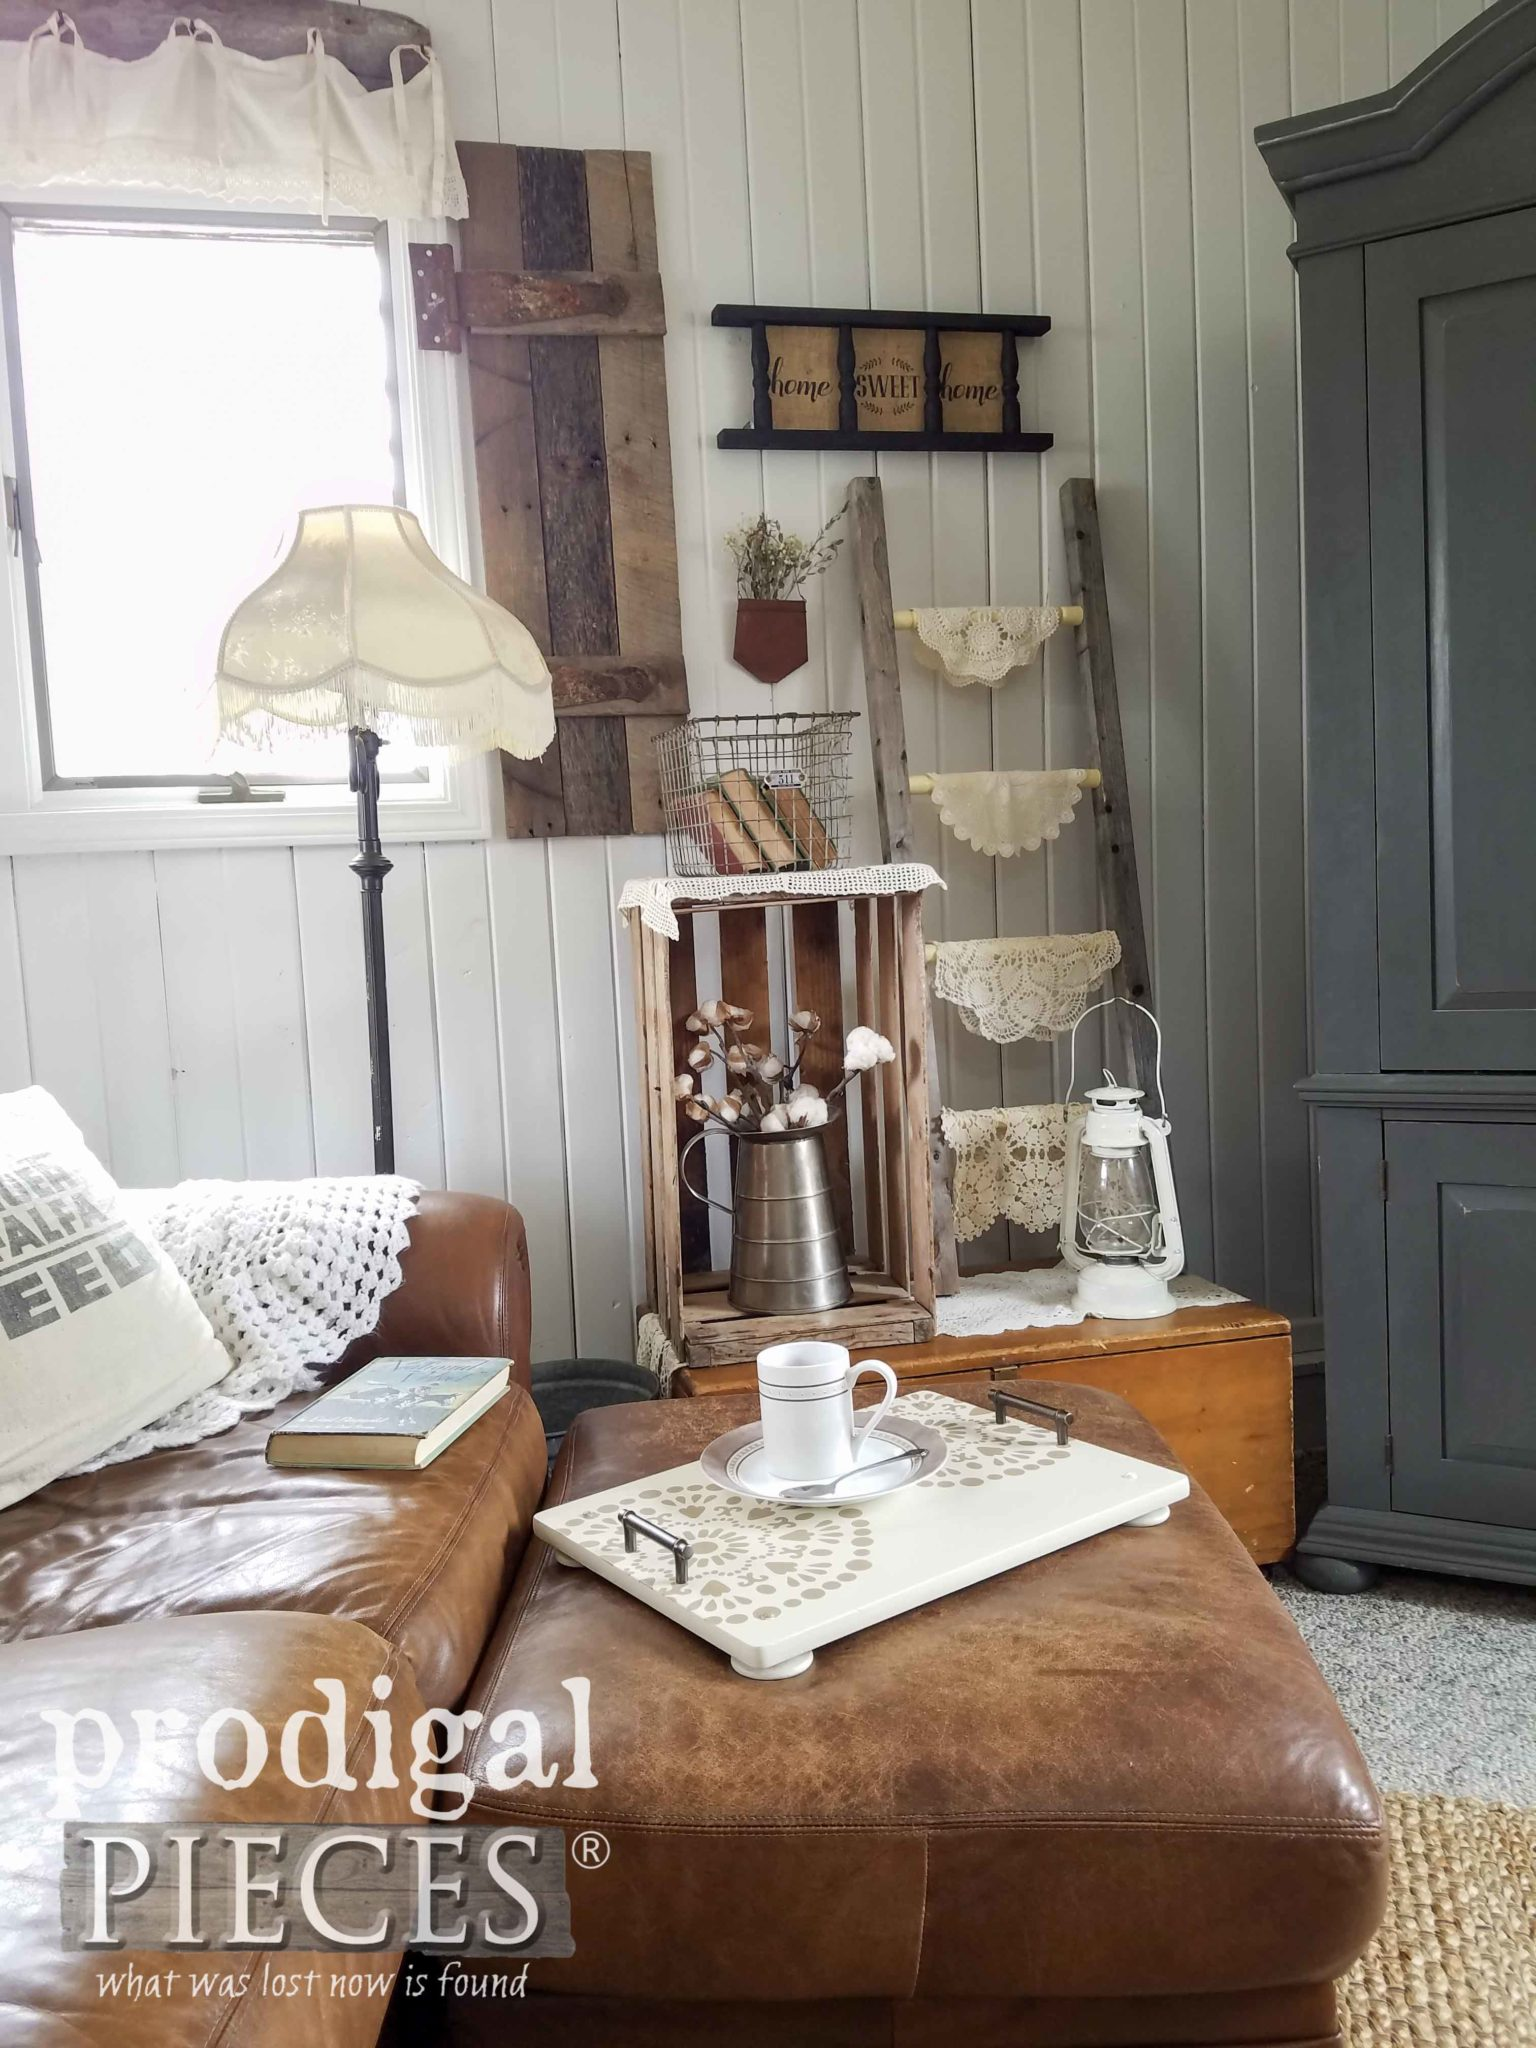 Farmhouse Style Living Room Filled with Repurposed Home Decor by Larissa & Son of Prodigal Pieces | prodigalpieces.com